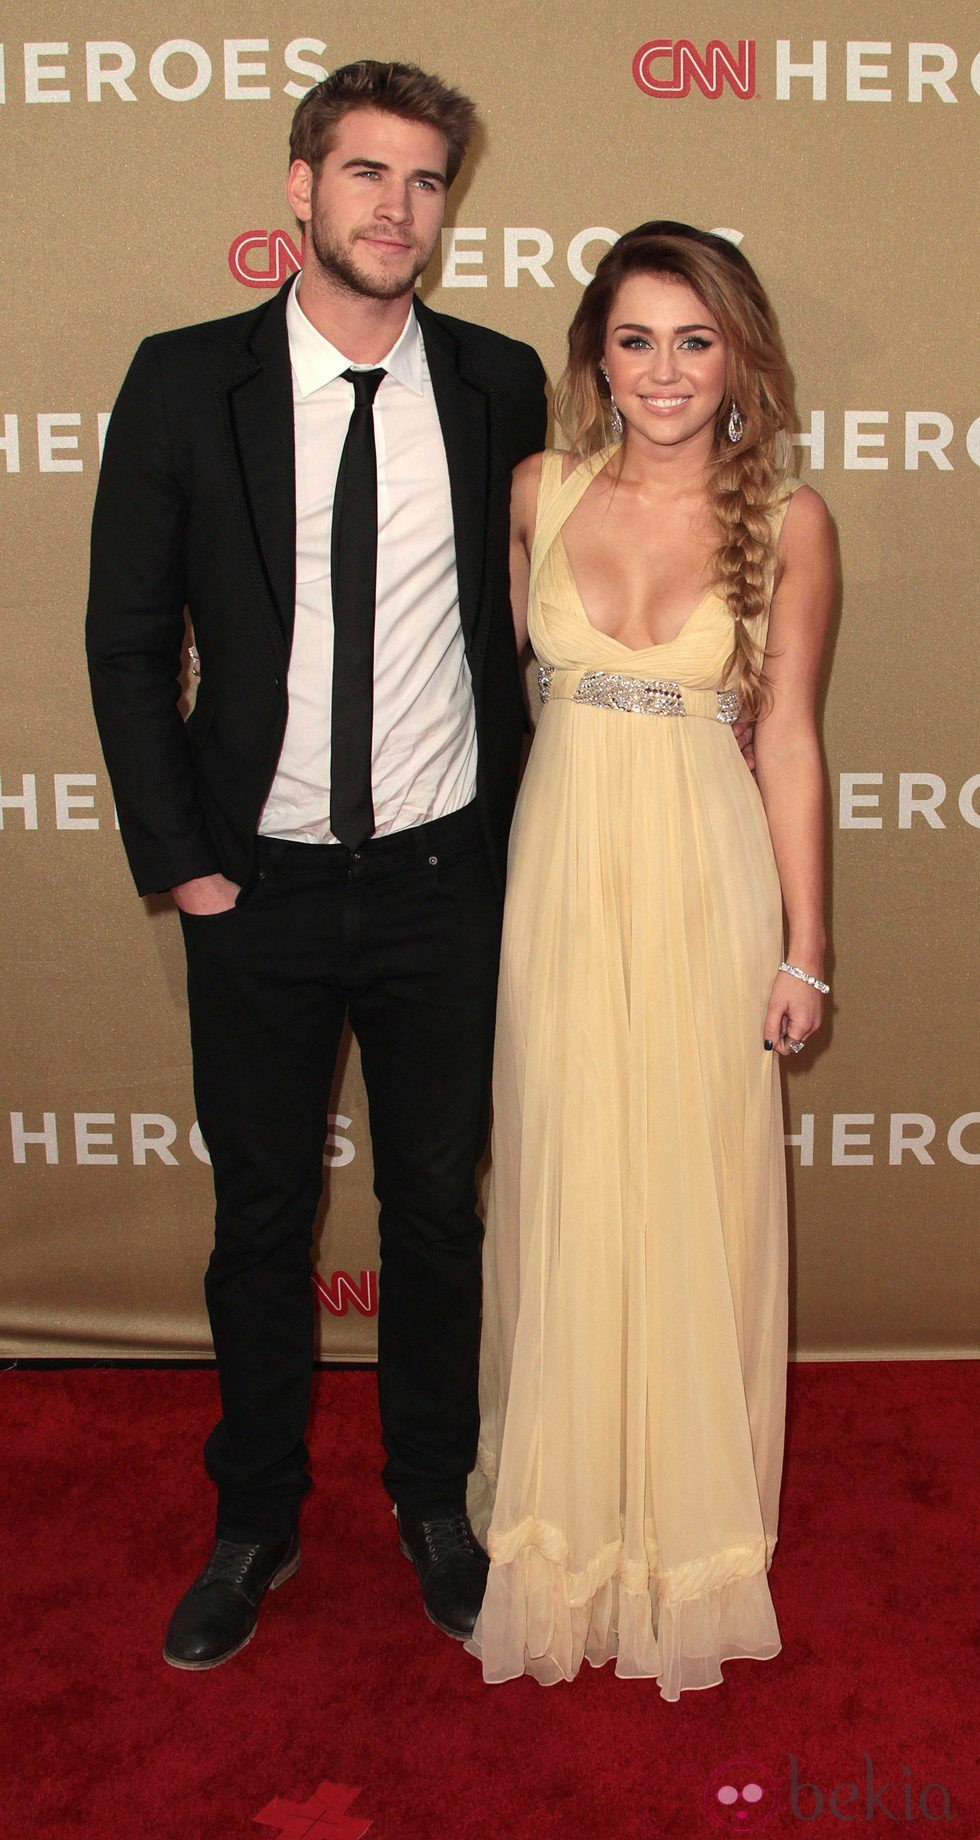 Liam Hemsworth y Miley Cyrus en la gala CNN Heroes: An All-Star Tribute